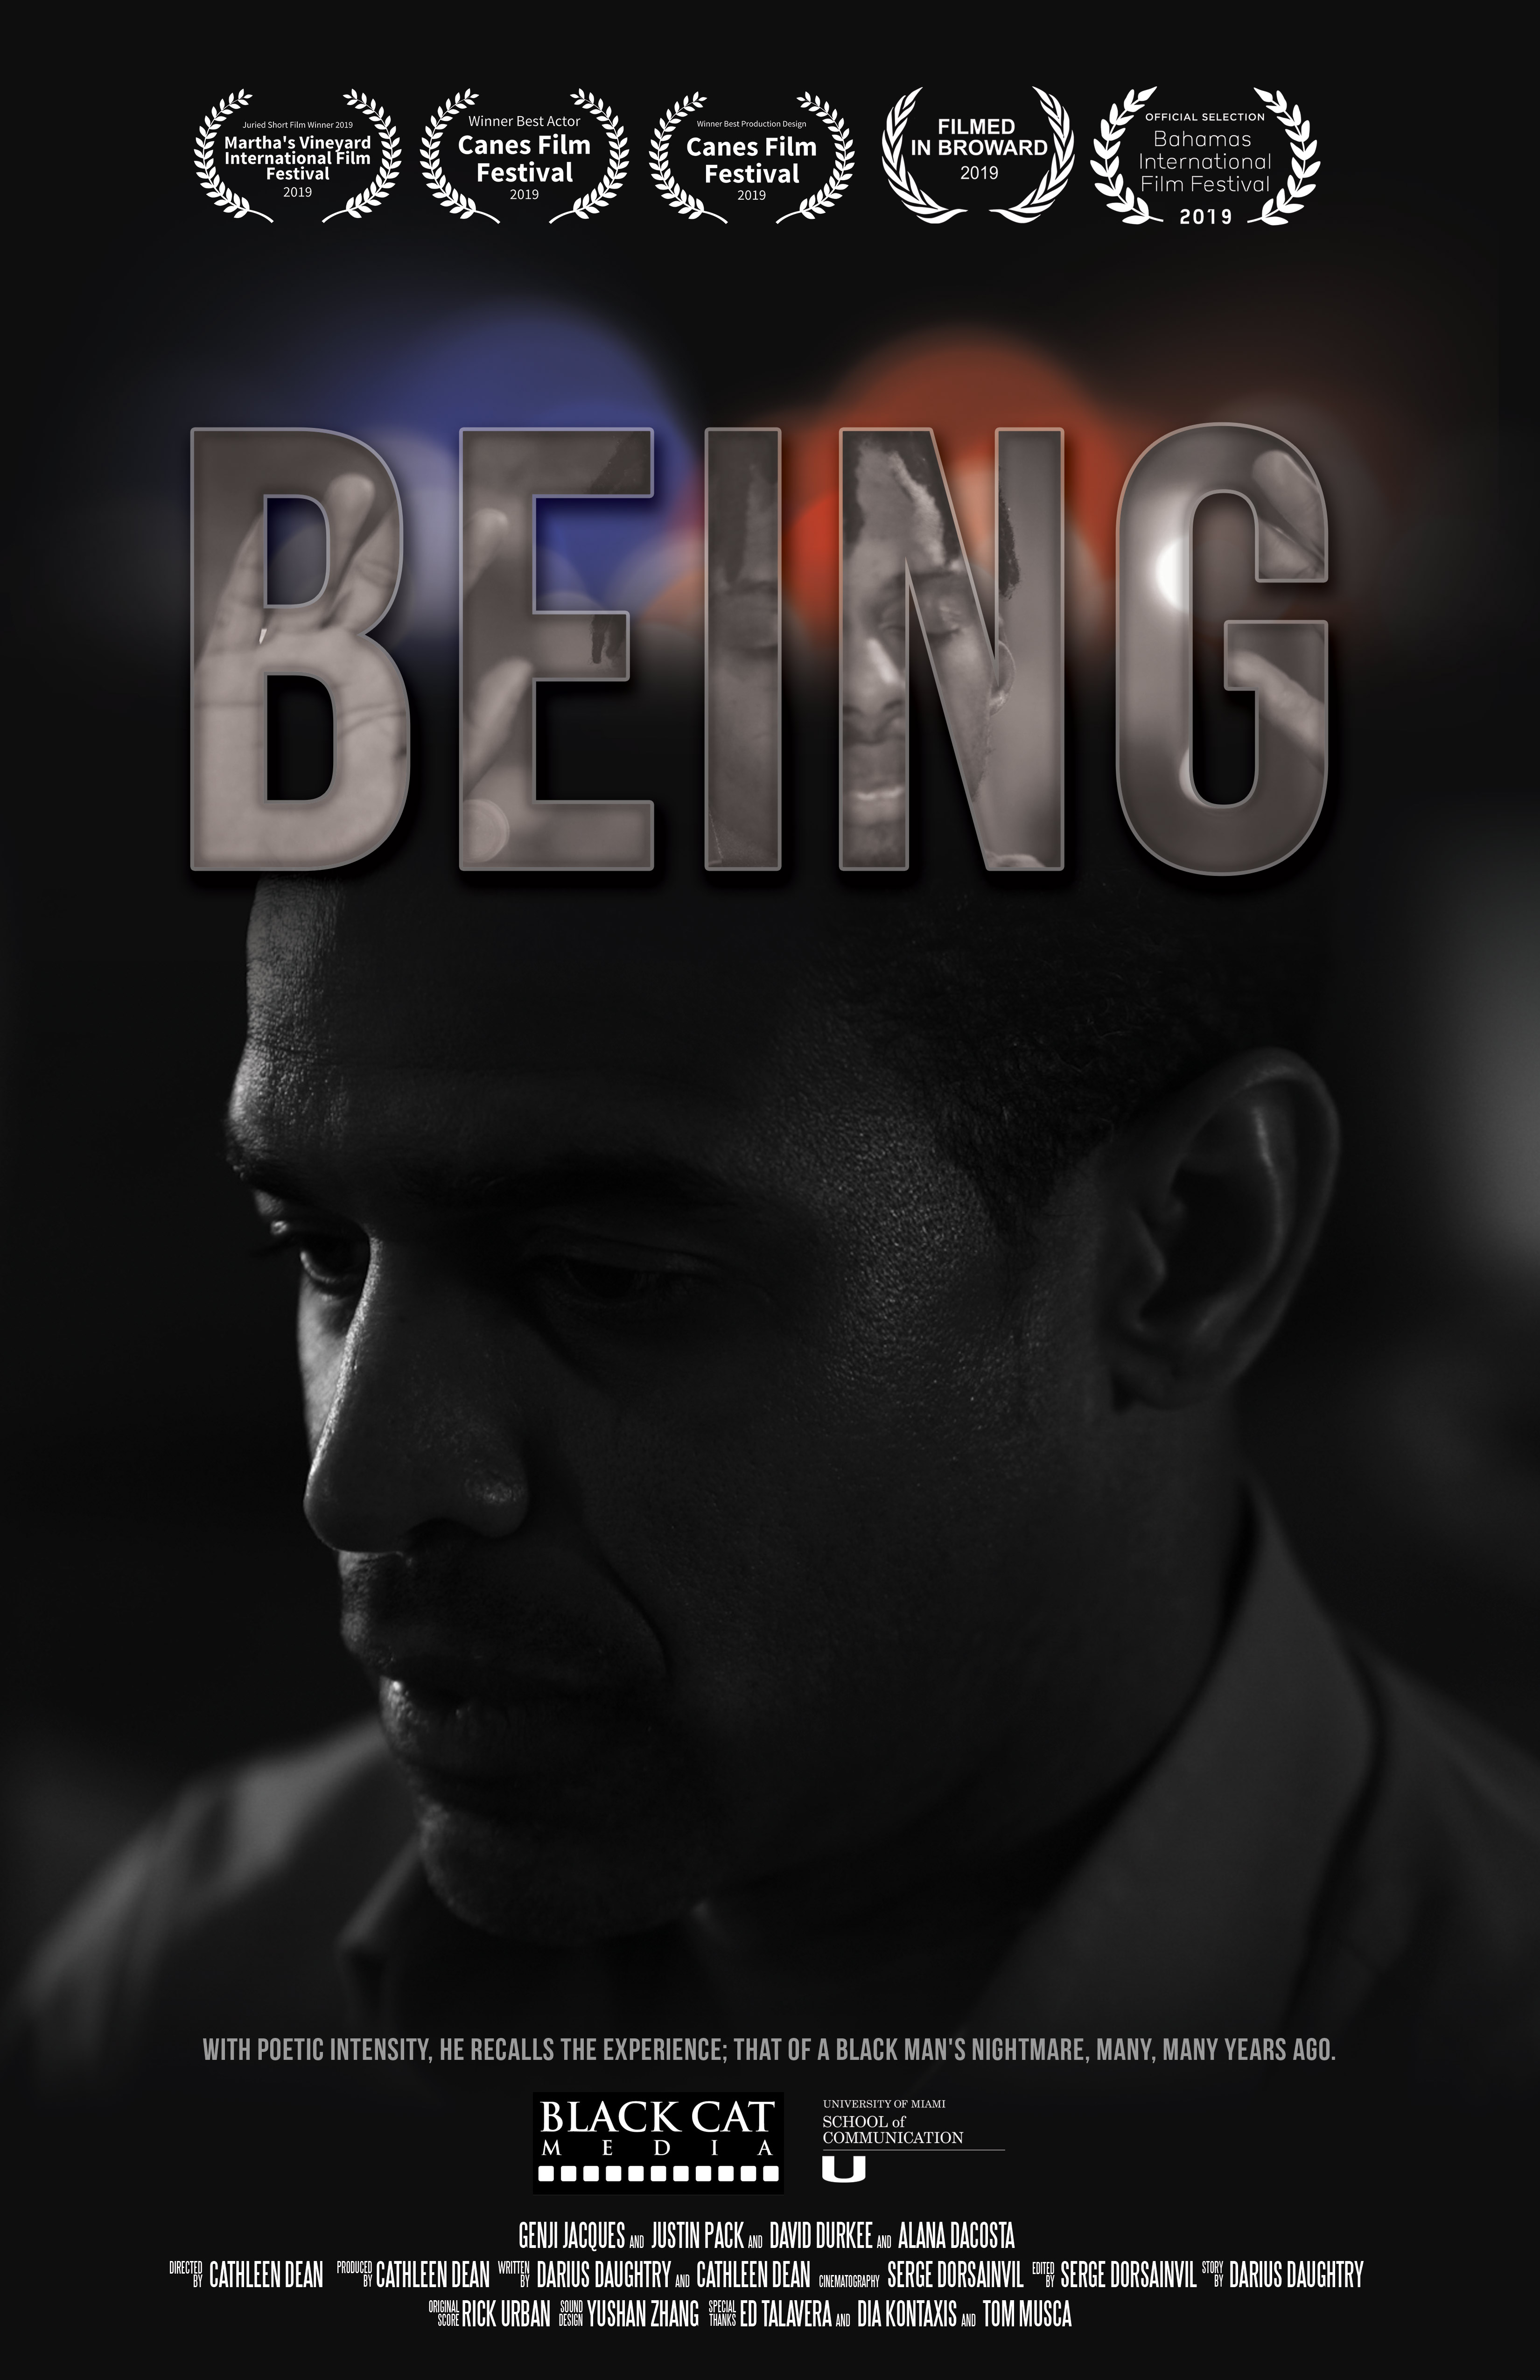 """Being"" receives Best Short Film award"